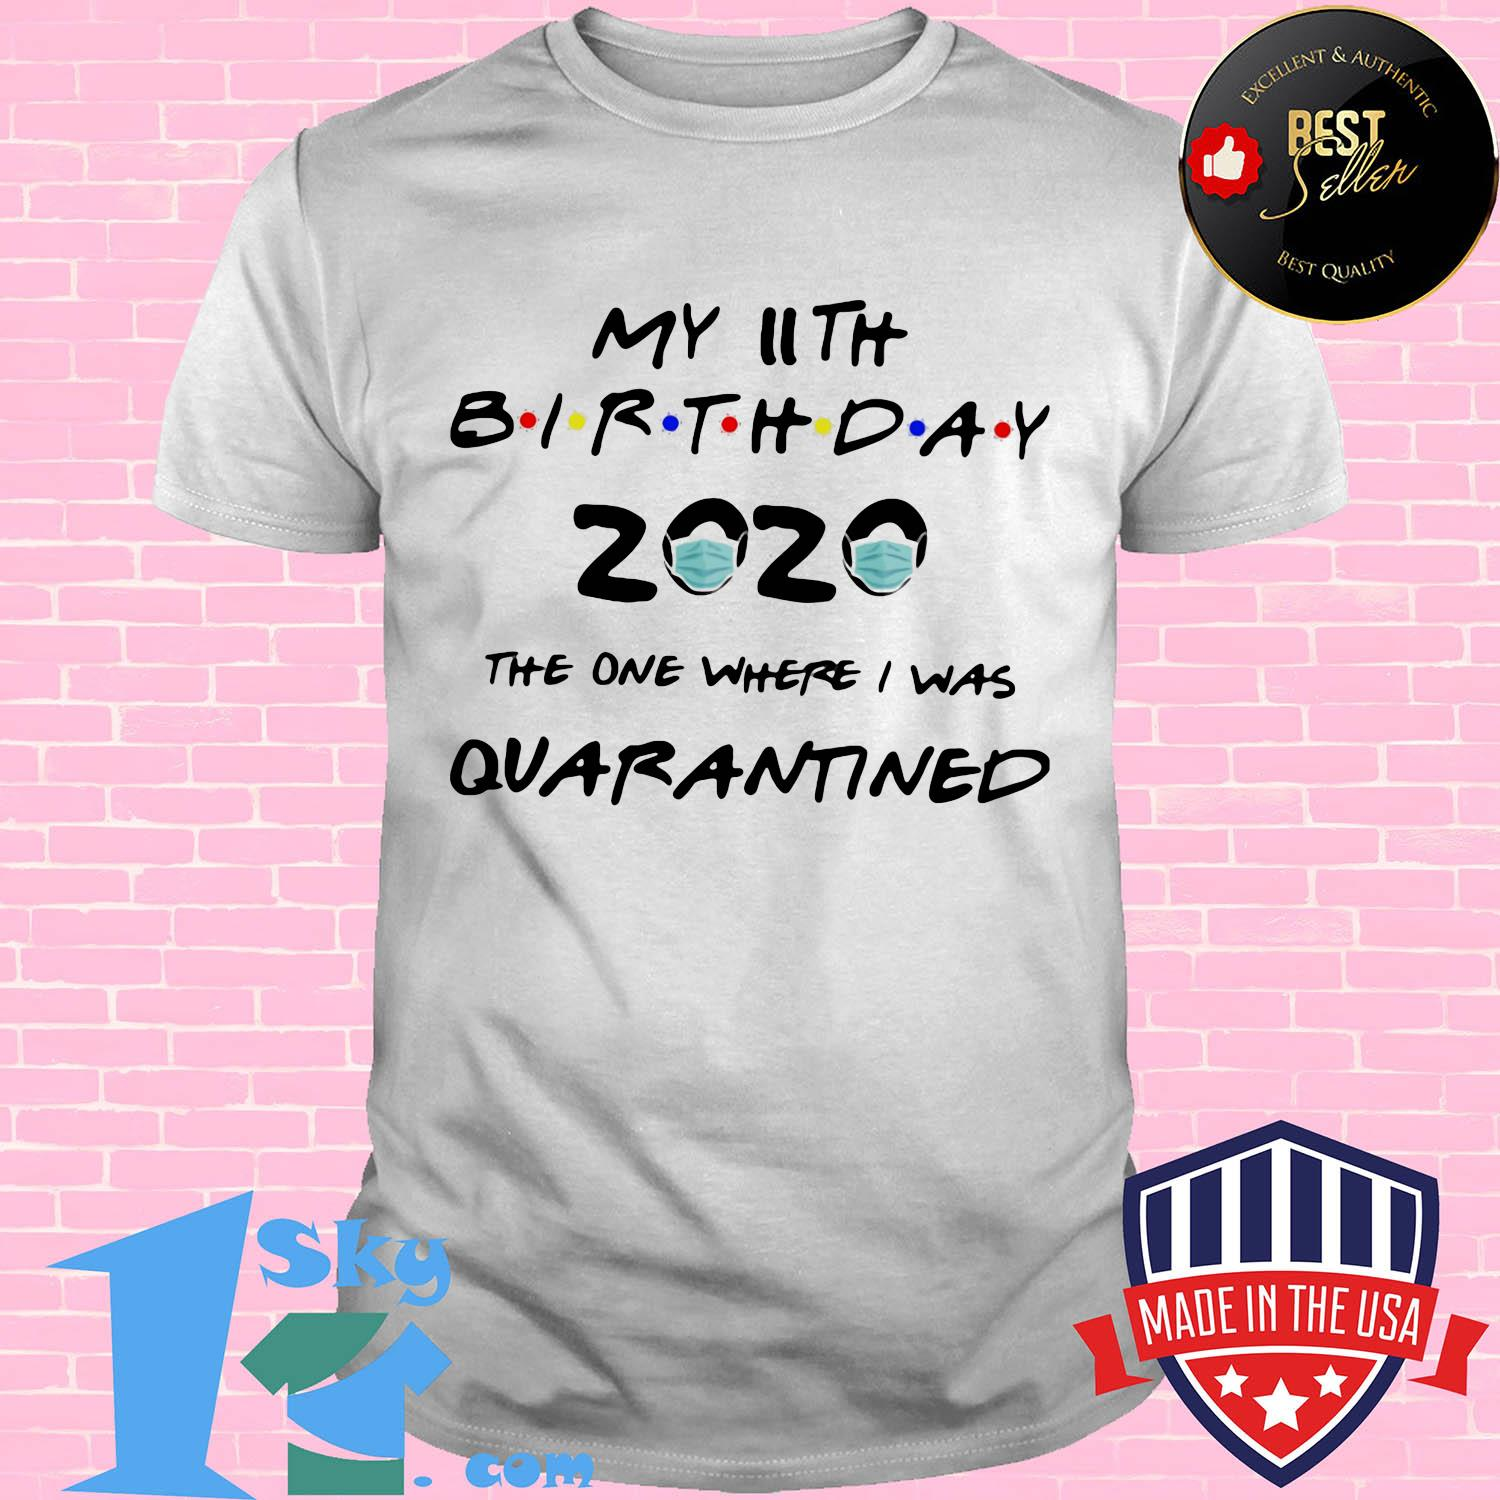 My 11th birthday 2020 the one where I was quarantined mask shirt